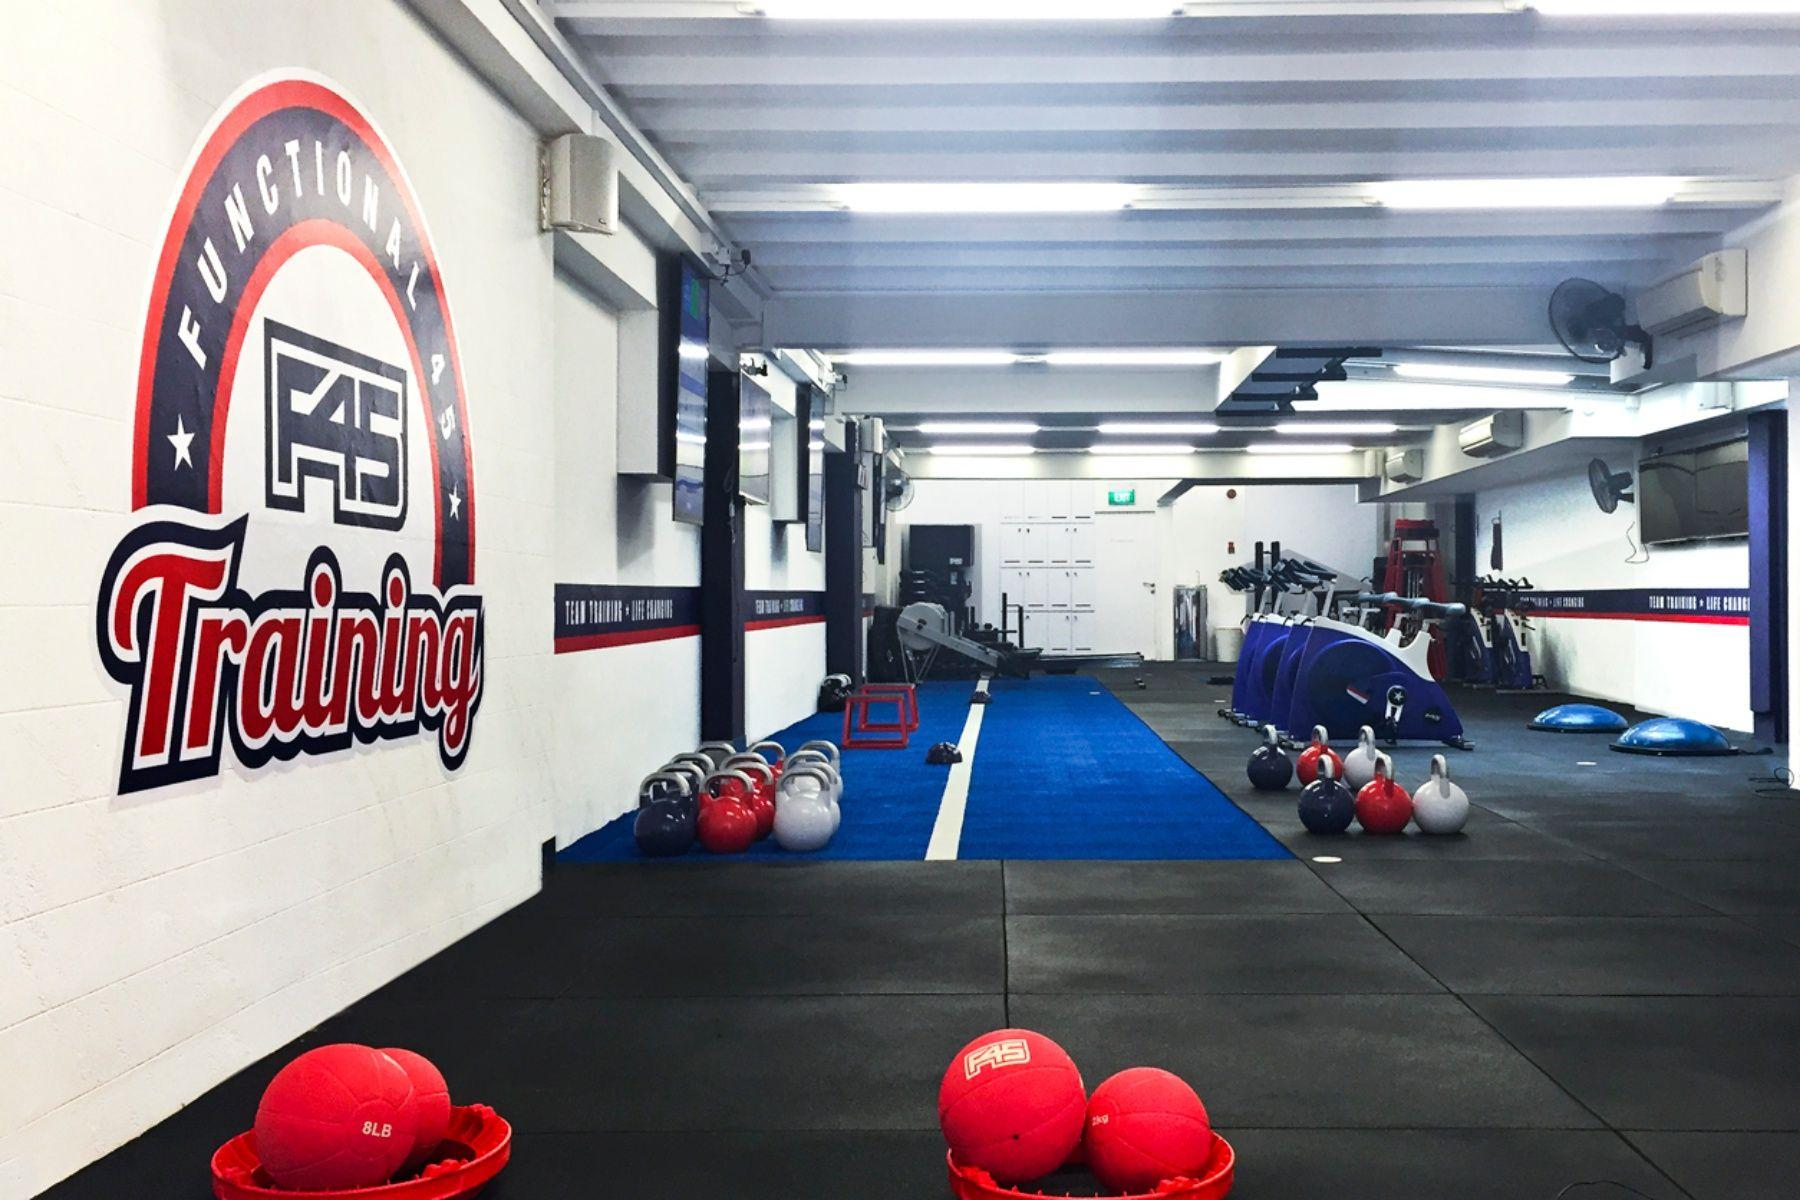 Work Out Like A Celebrity With F45 Training